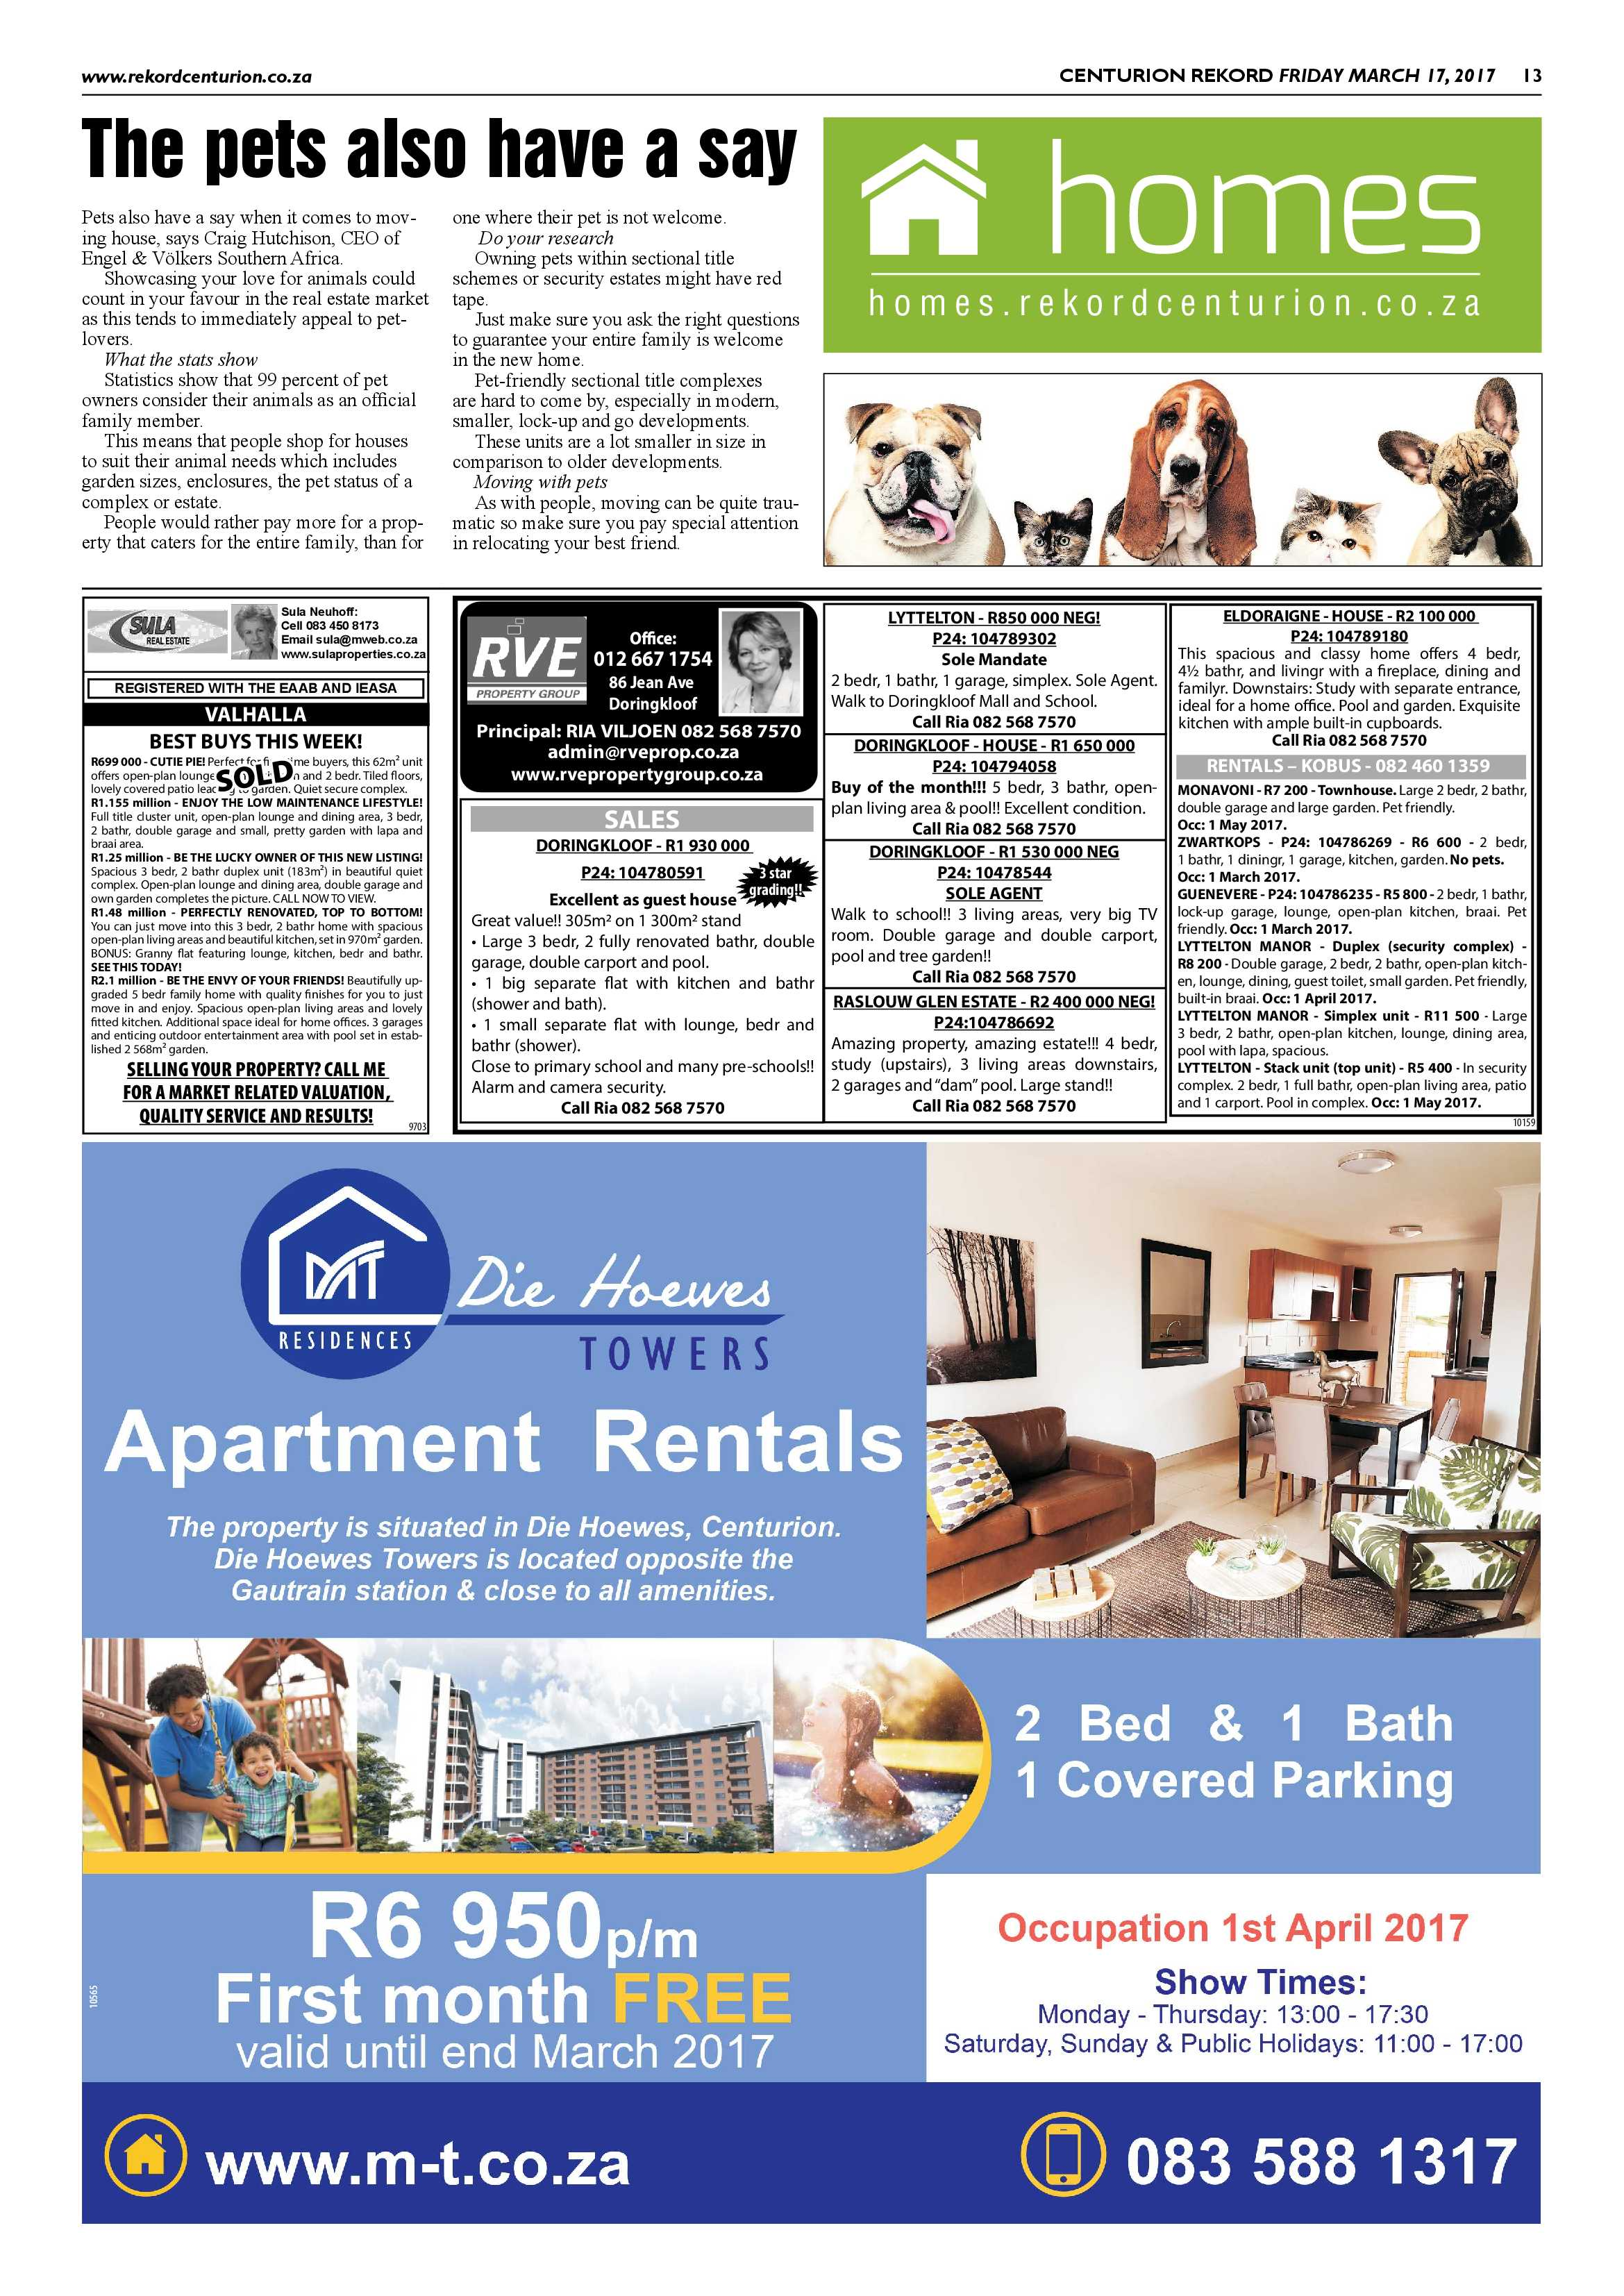 rekord-centurion-17-march-2017-epapers-page-13